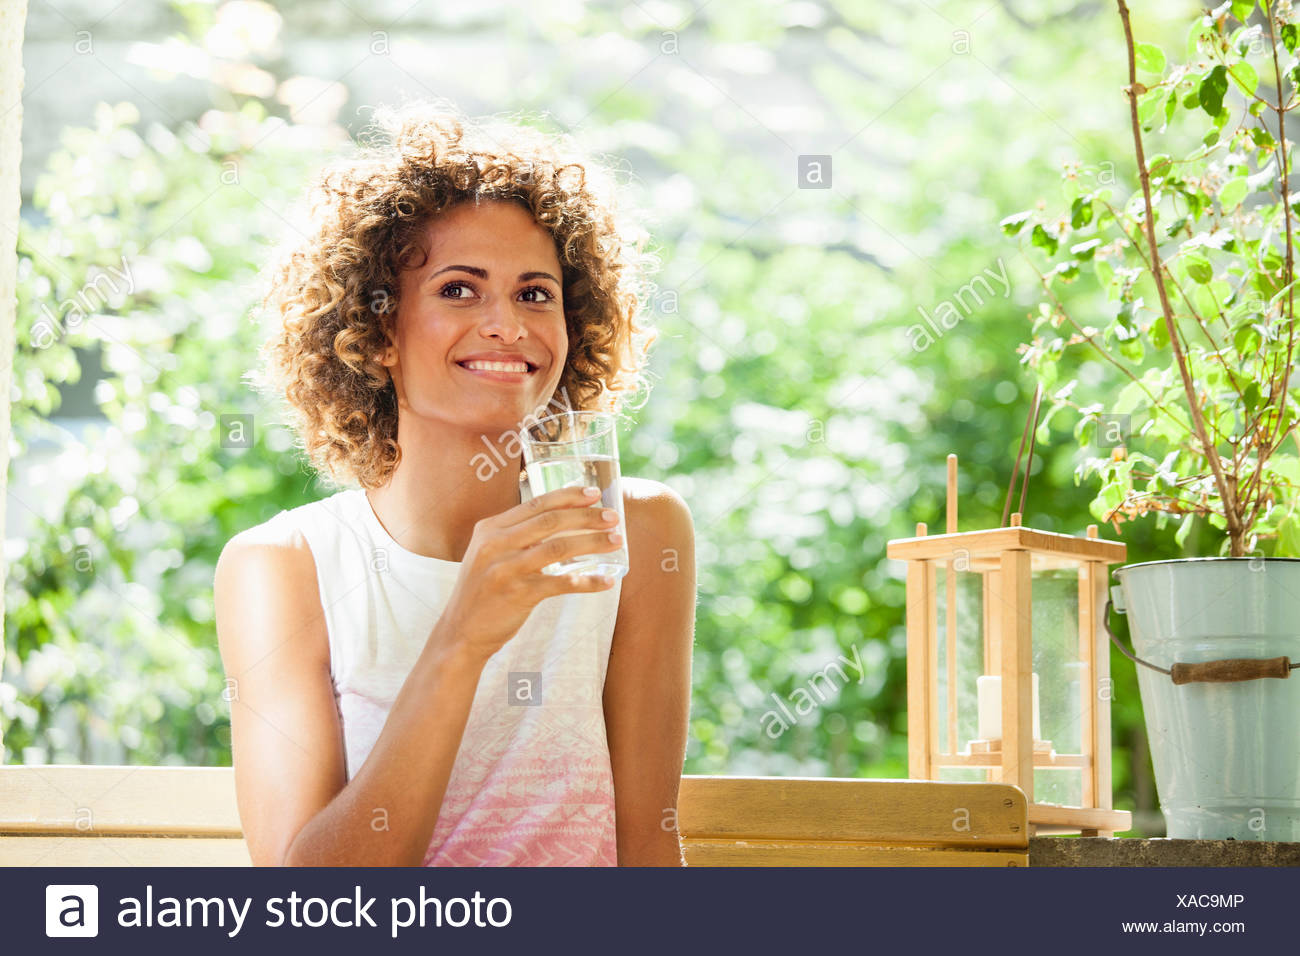 Smiling woman drinking glass of water Stock Photo